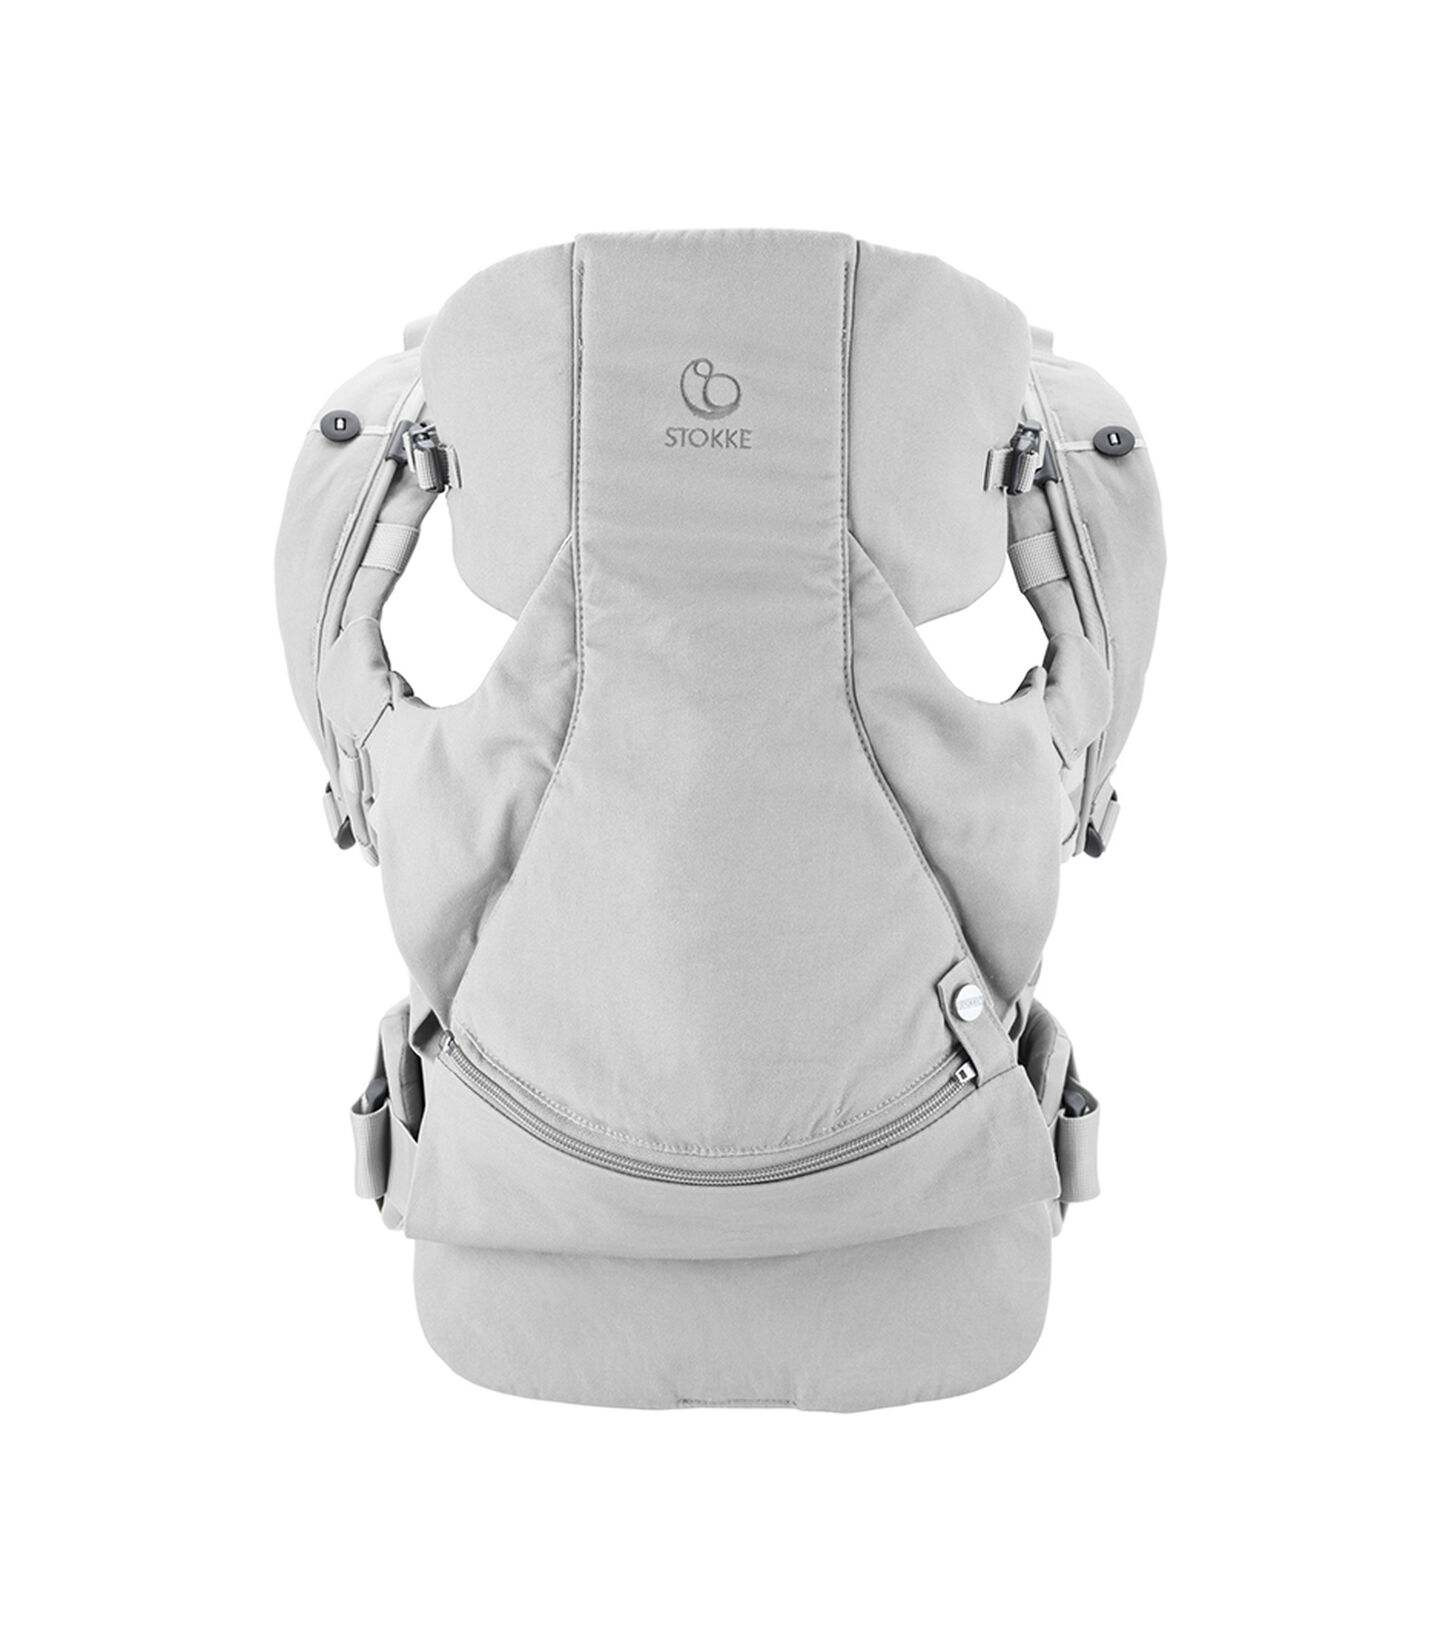 Stokke® MyCarrier™ Front Carrier, Grey. view 1